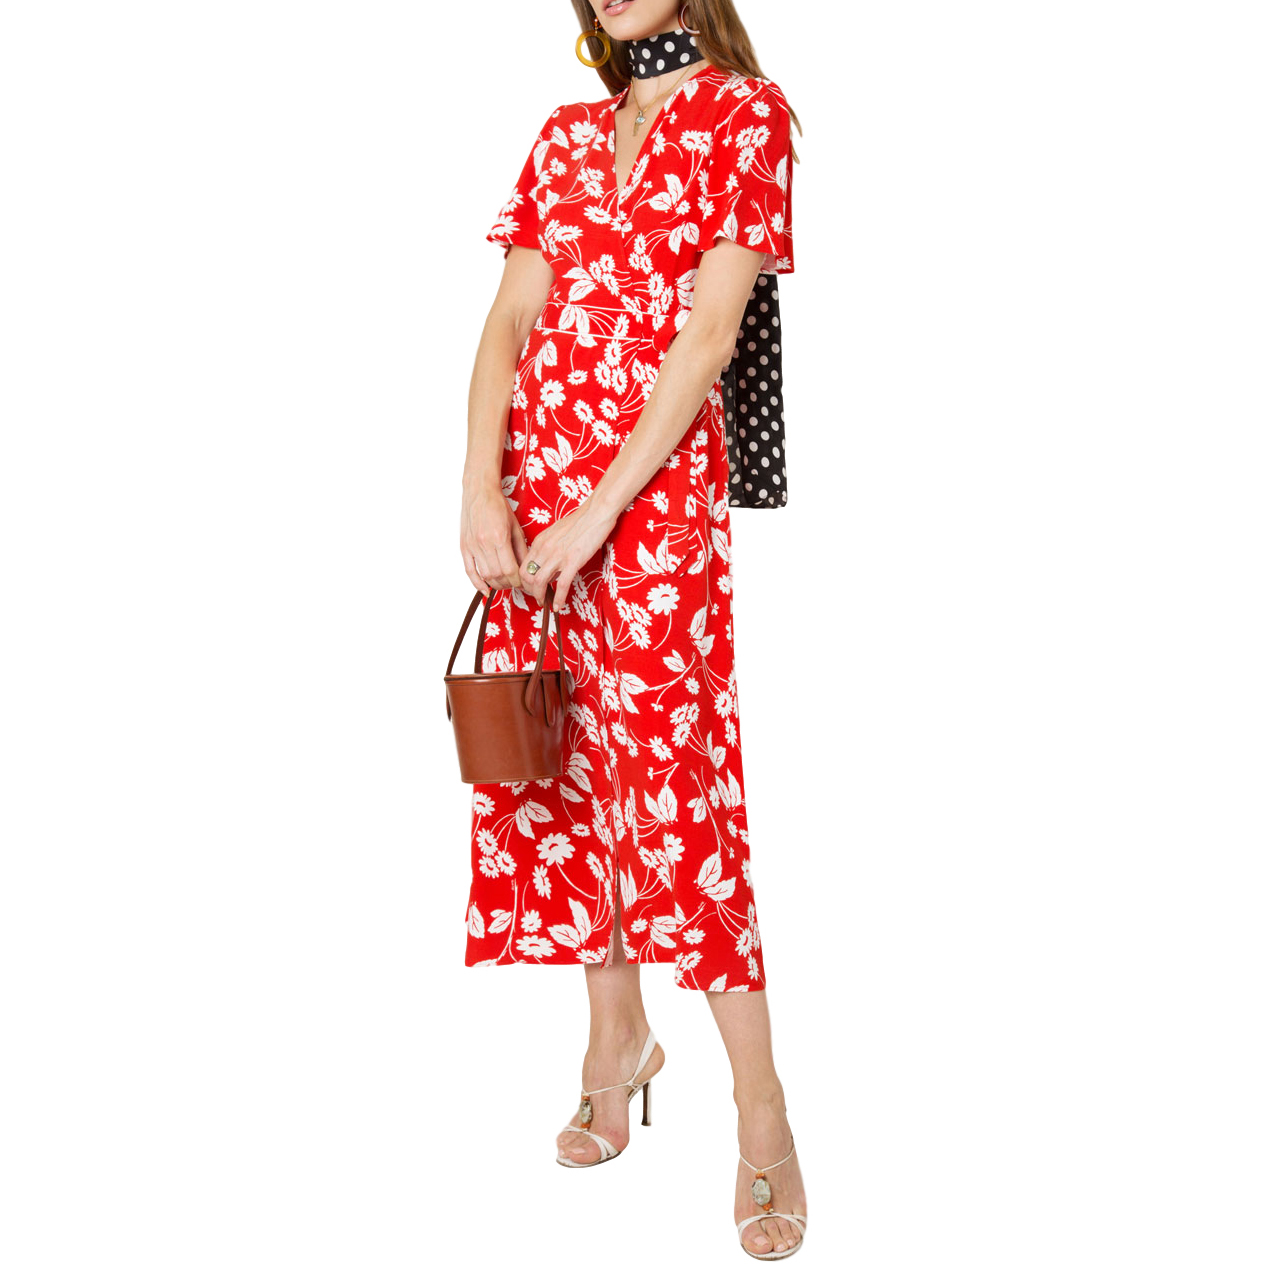 Rixo Shauna Abstract Daisy Red Midi Wrap Dress - Current